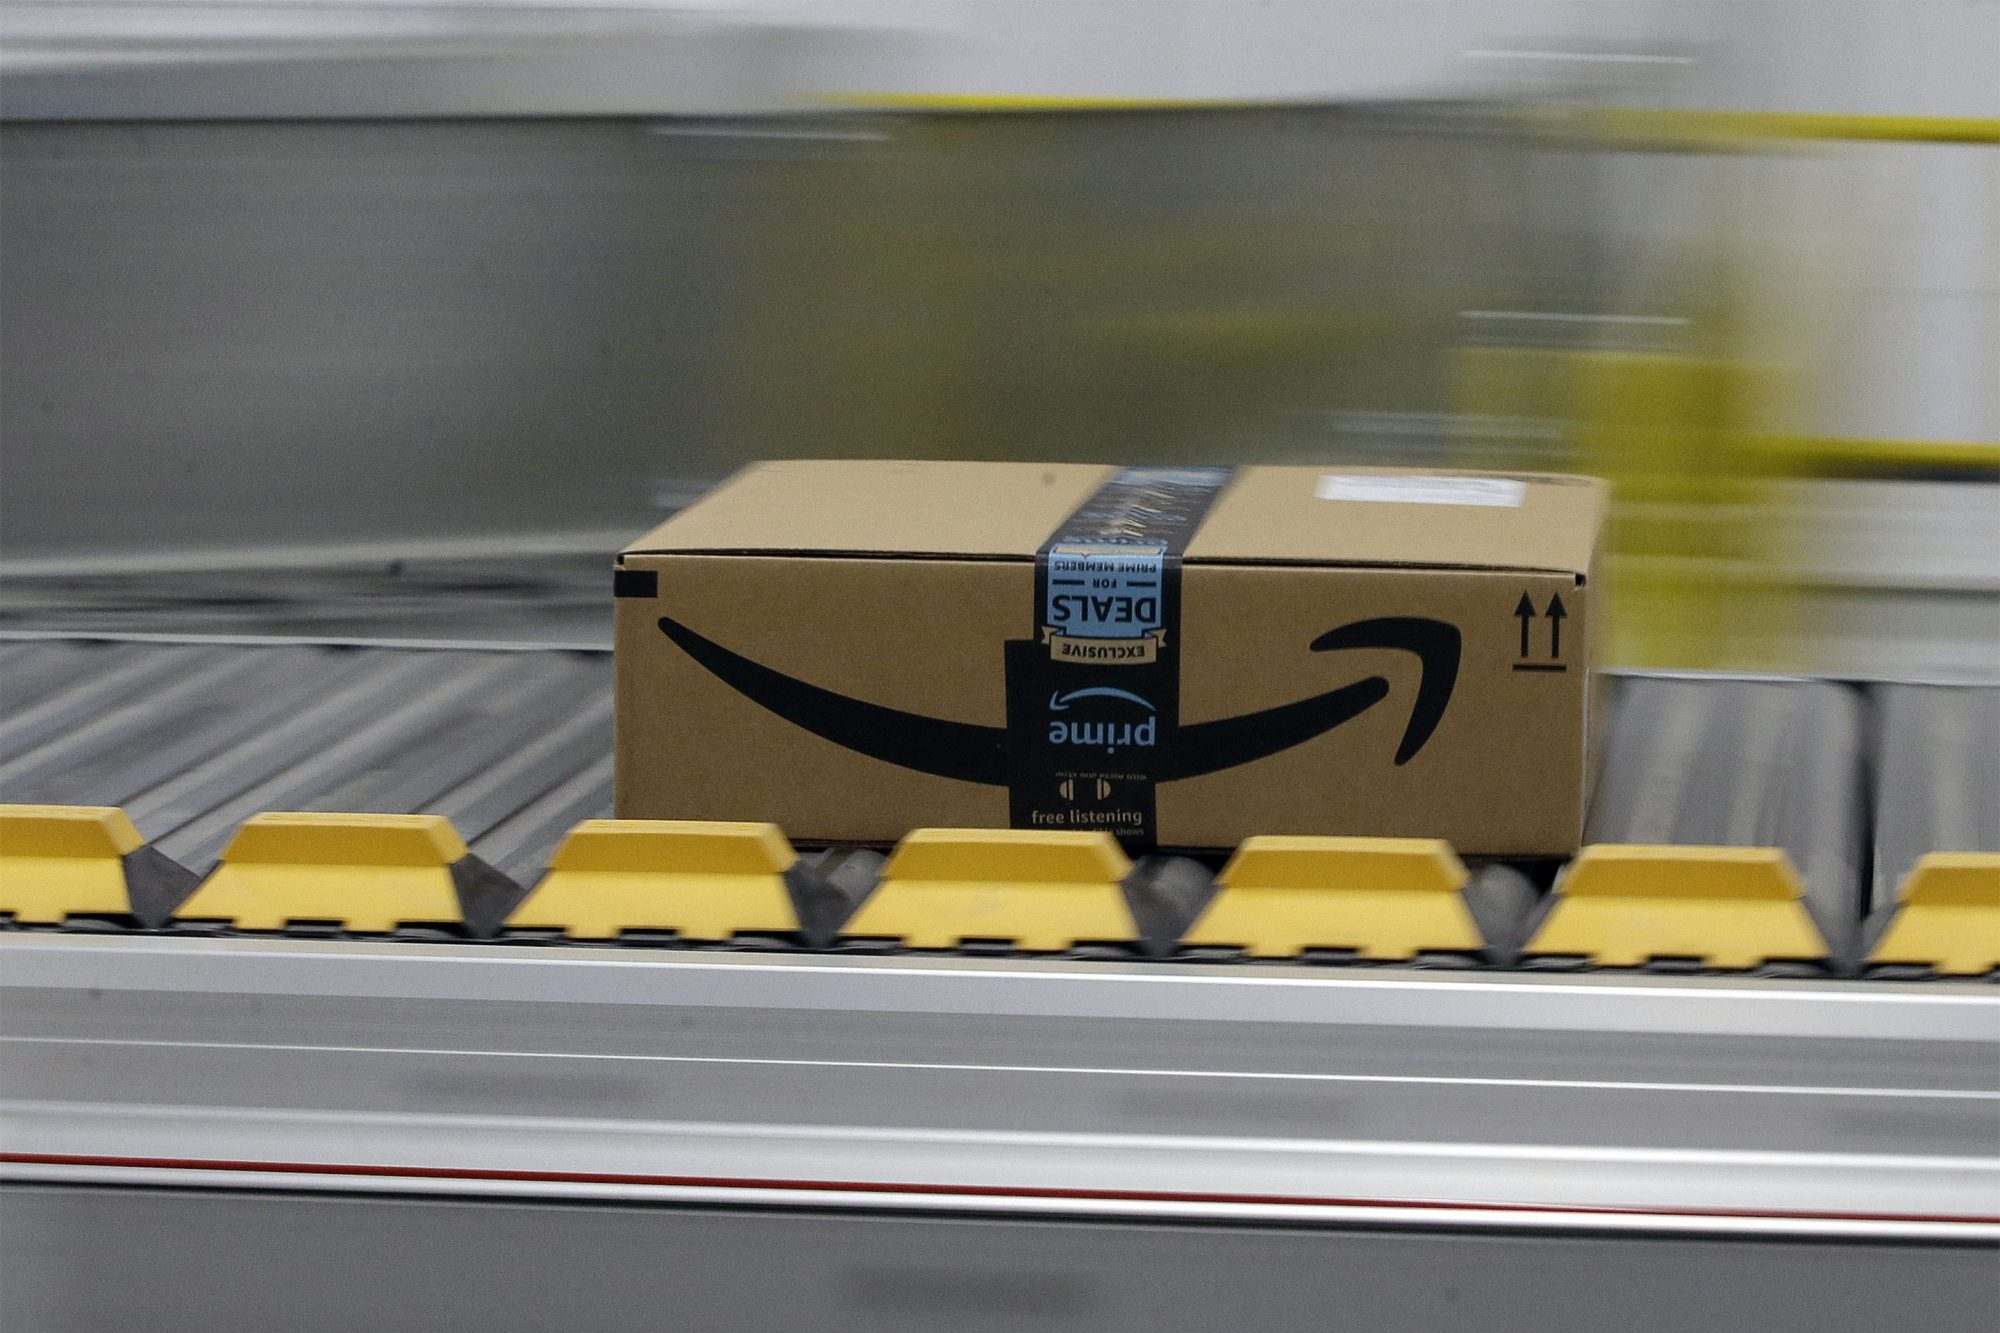 Amazon Prime Day vs. Black Friday: Which Has Better Deals?